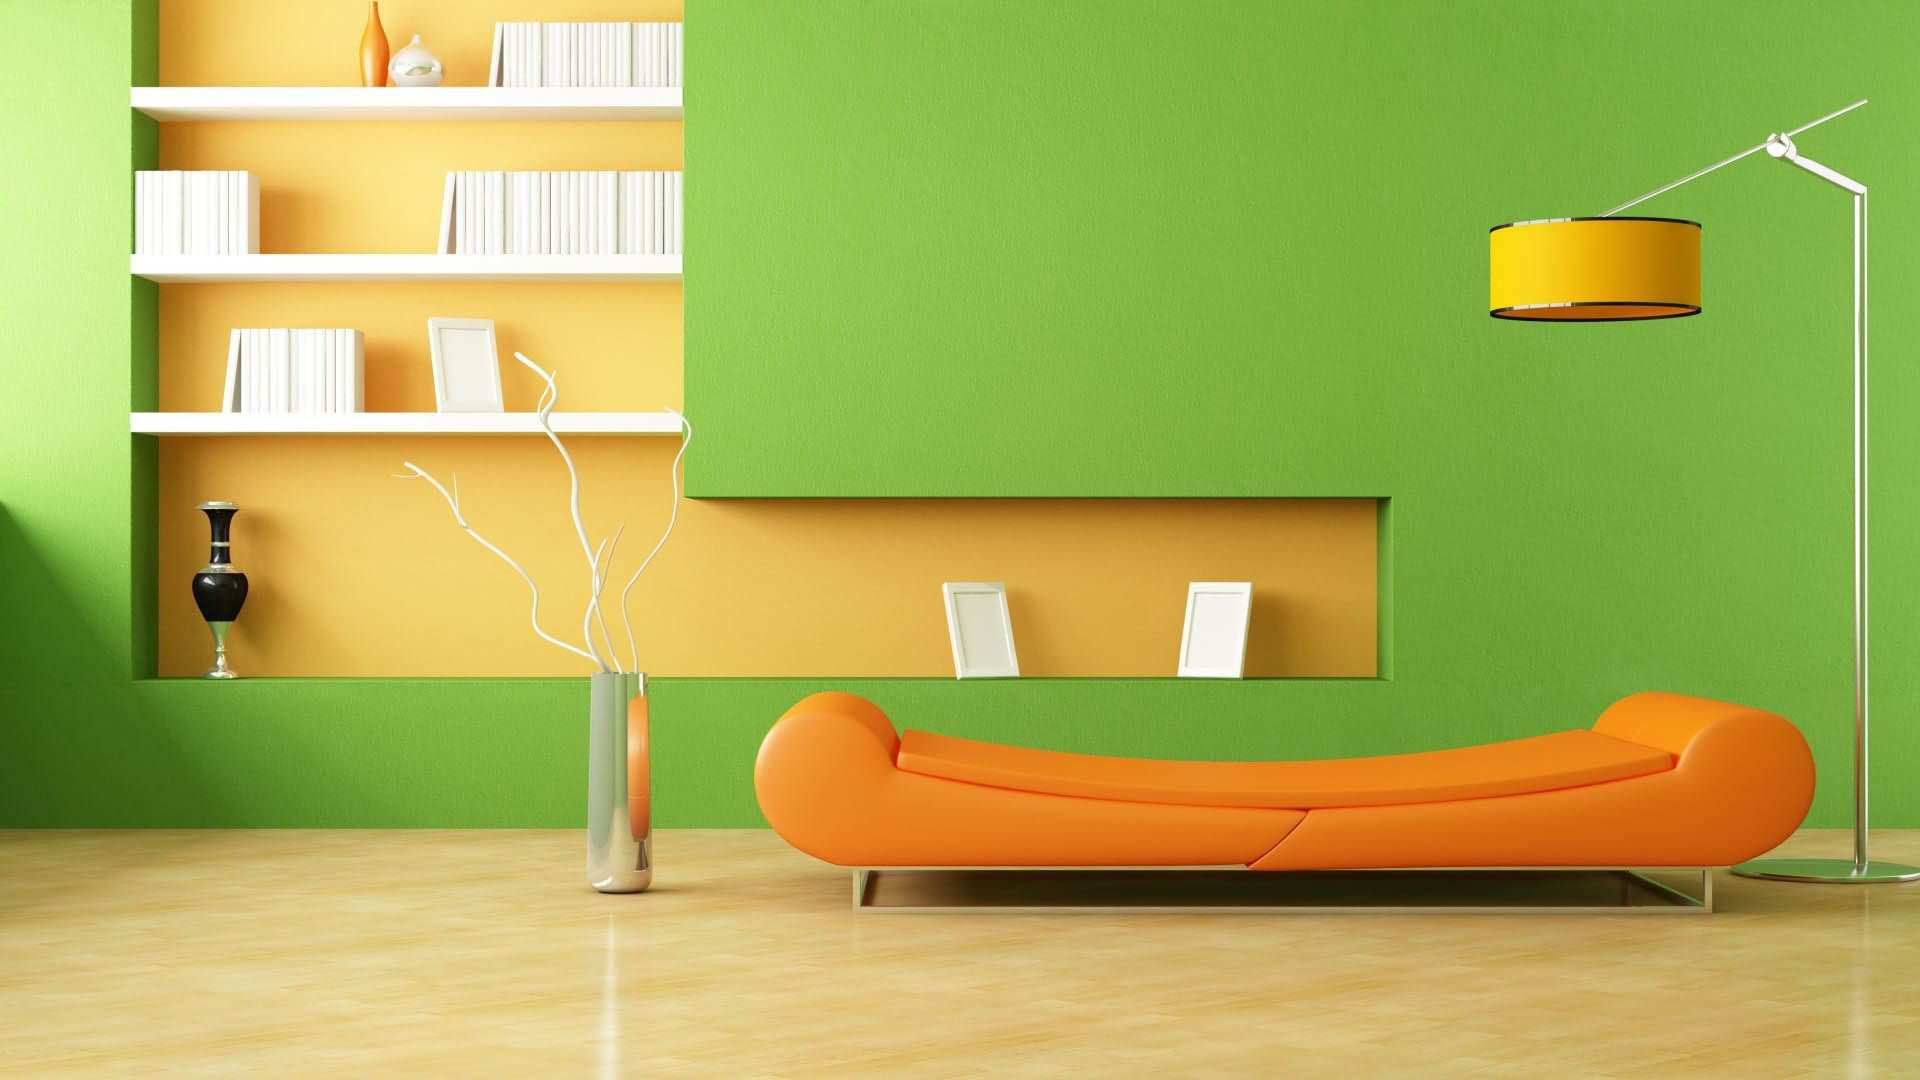 Green-Wall-And-Orange-Sofa-Interior-Picture1.jpg (1920×1080 ...